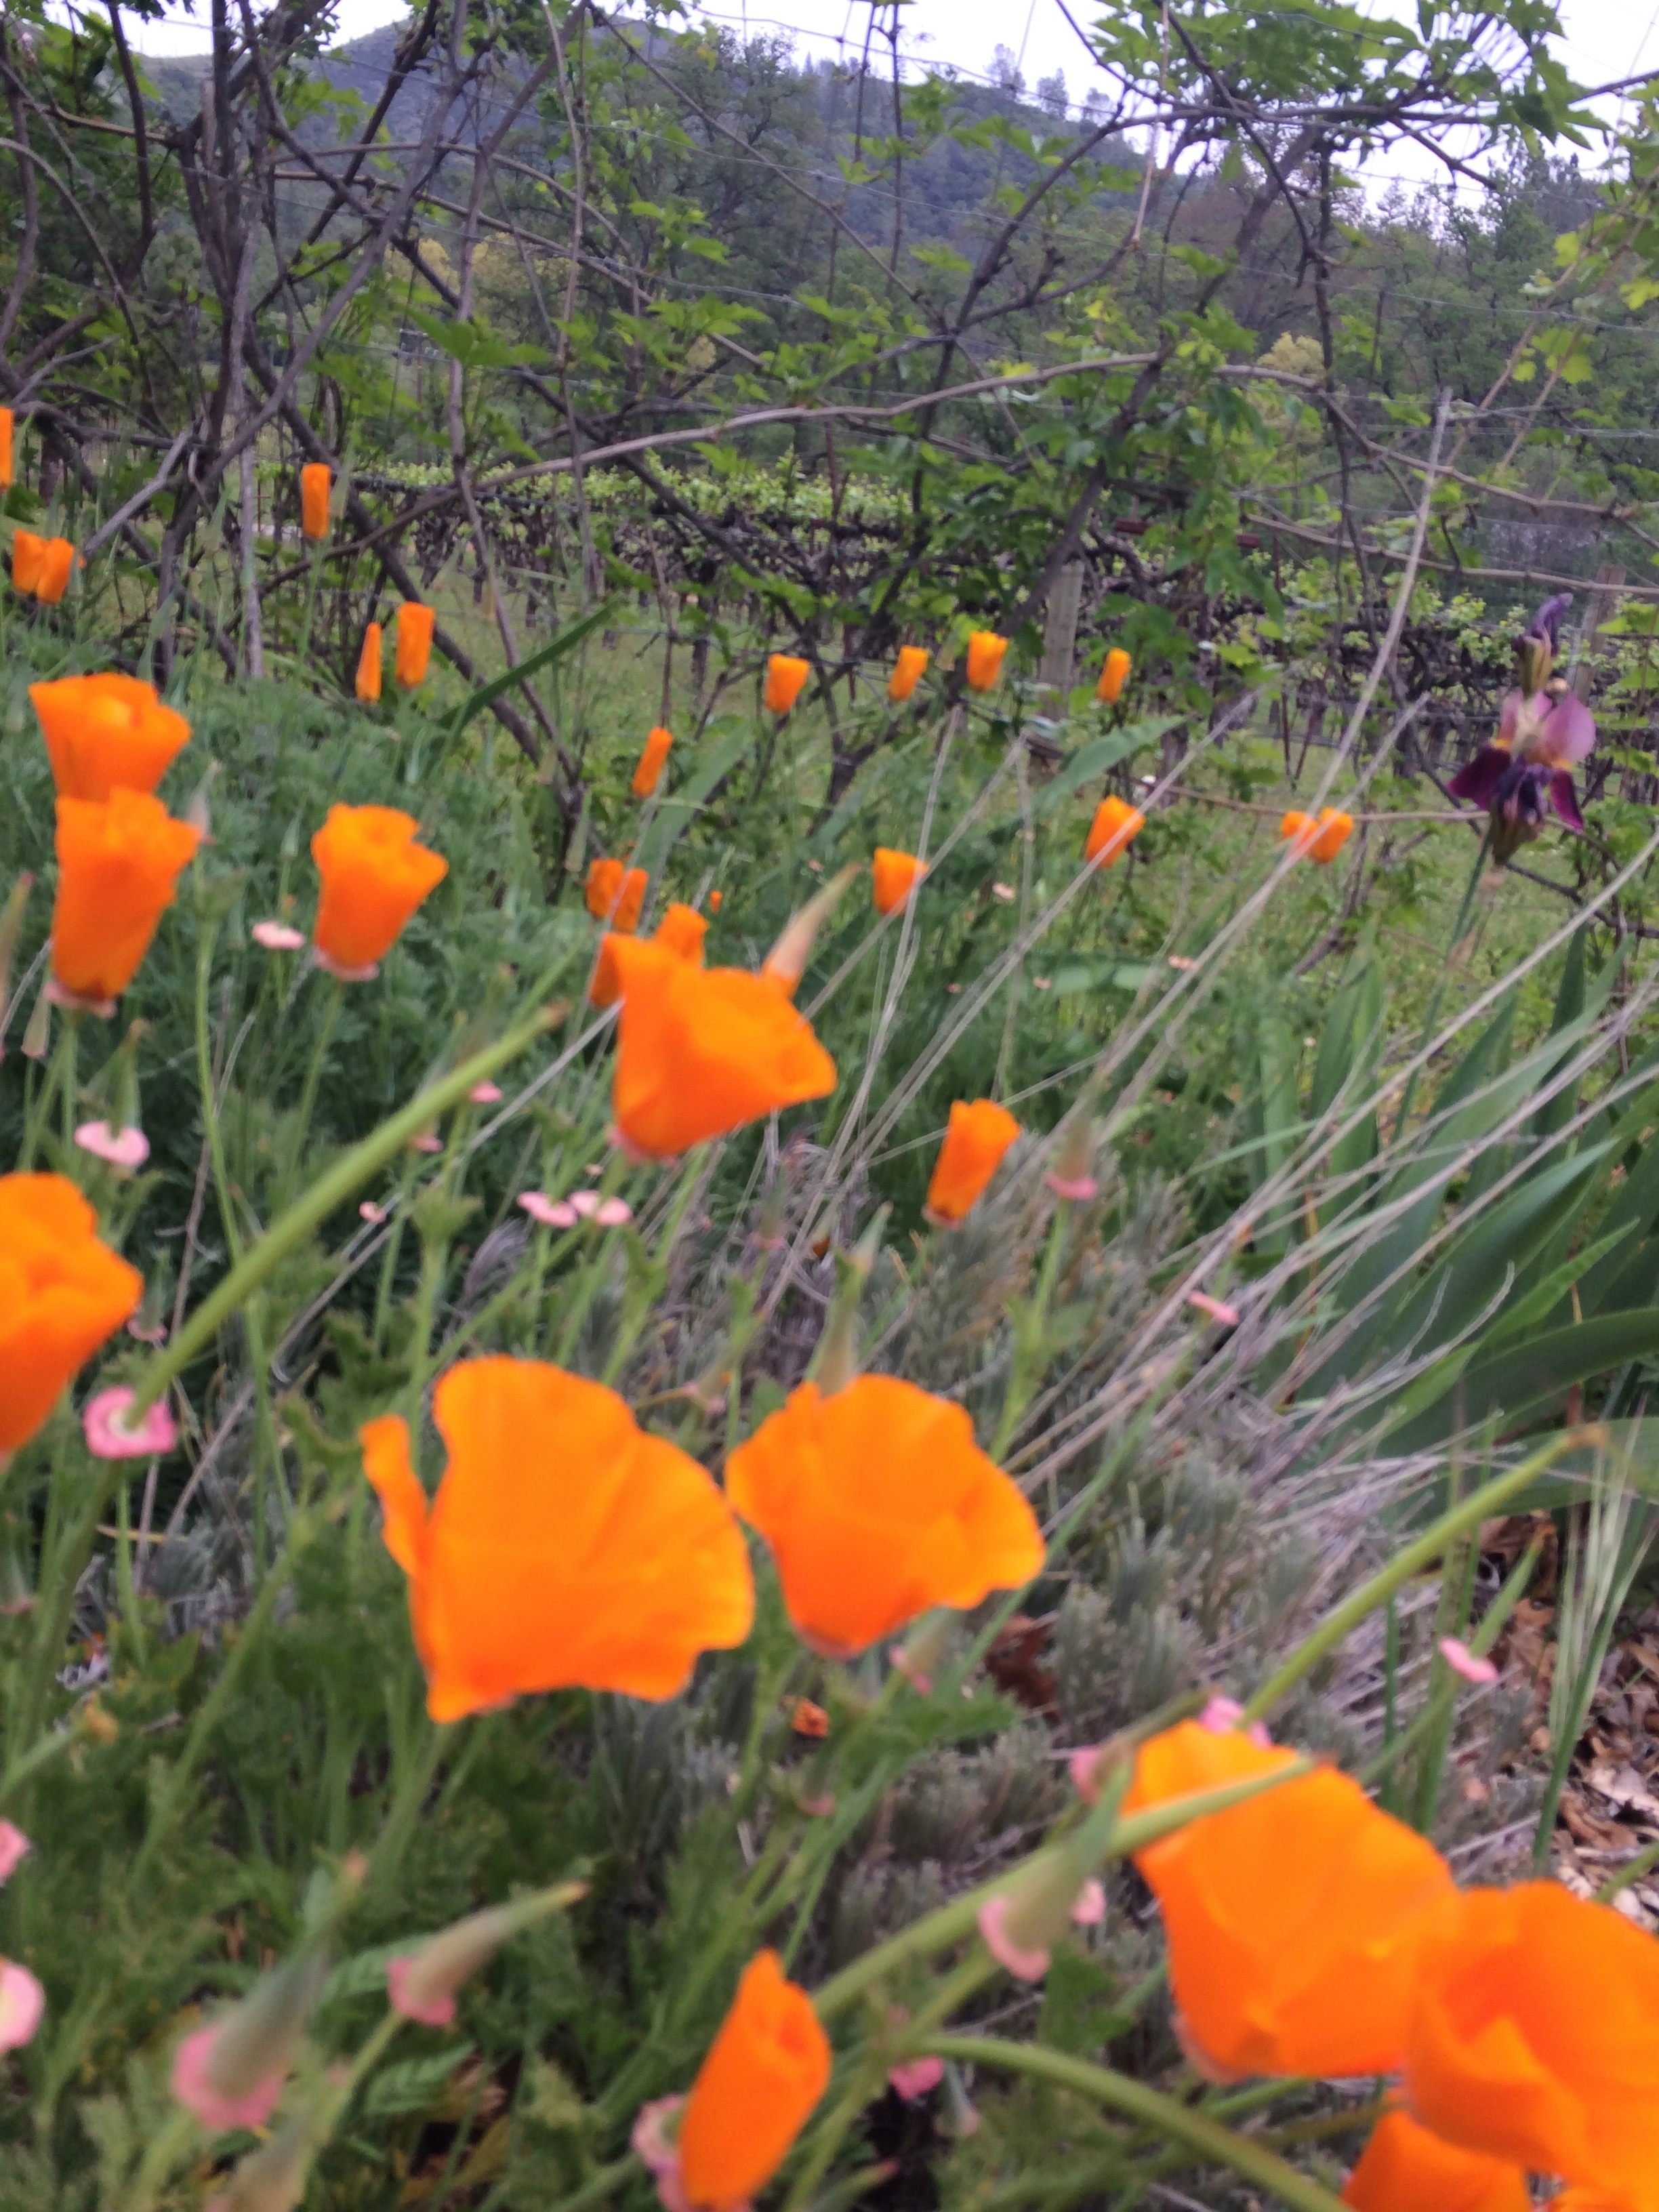 California poppies in vineyard